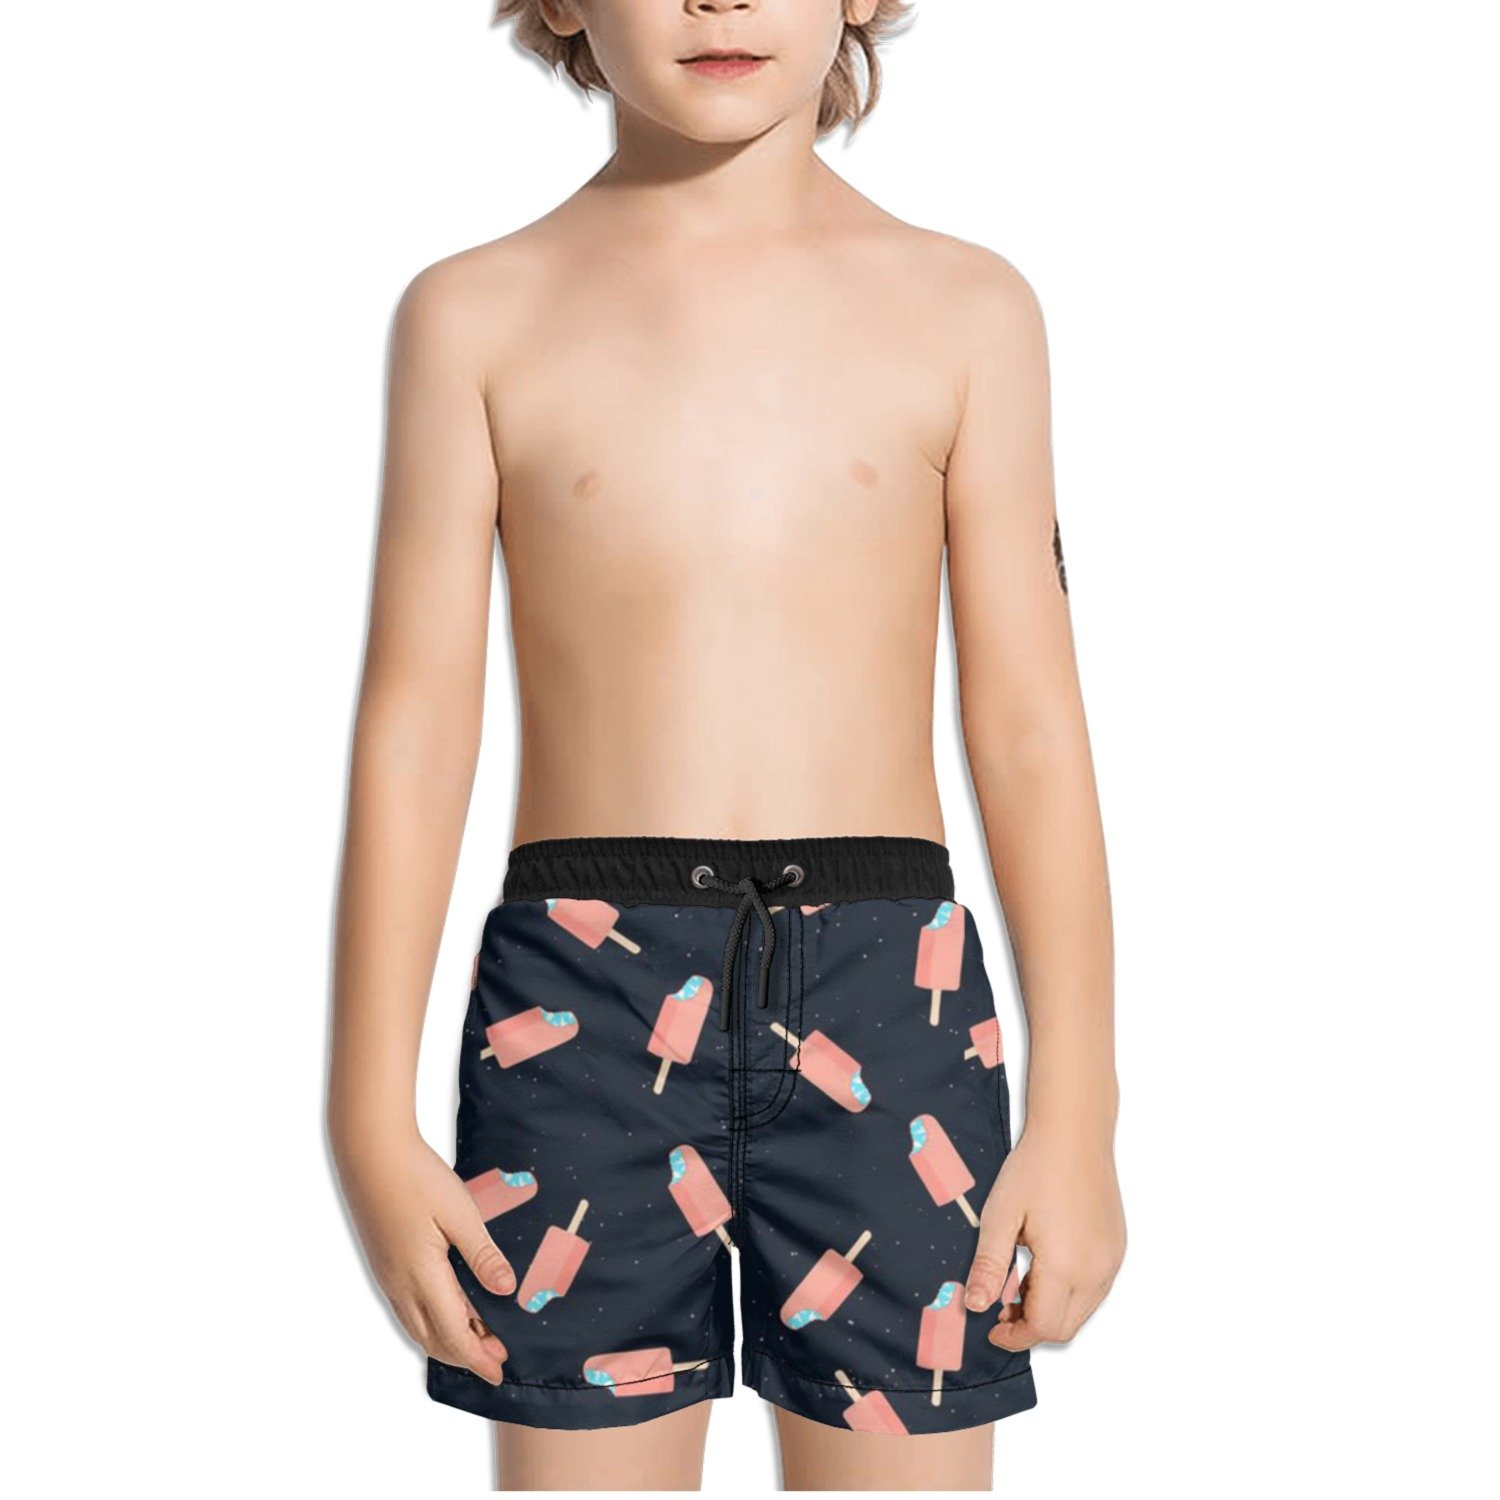 Ouxioaz Boys Swim Trunk Space Colorful Ice Pop Beach Board Shorts